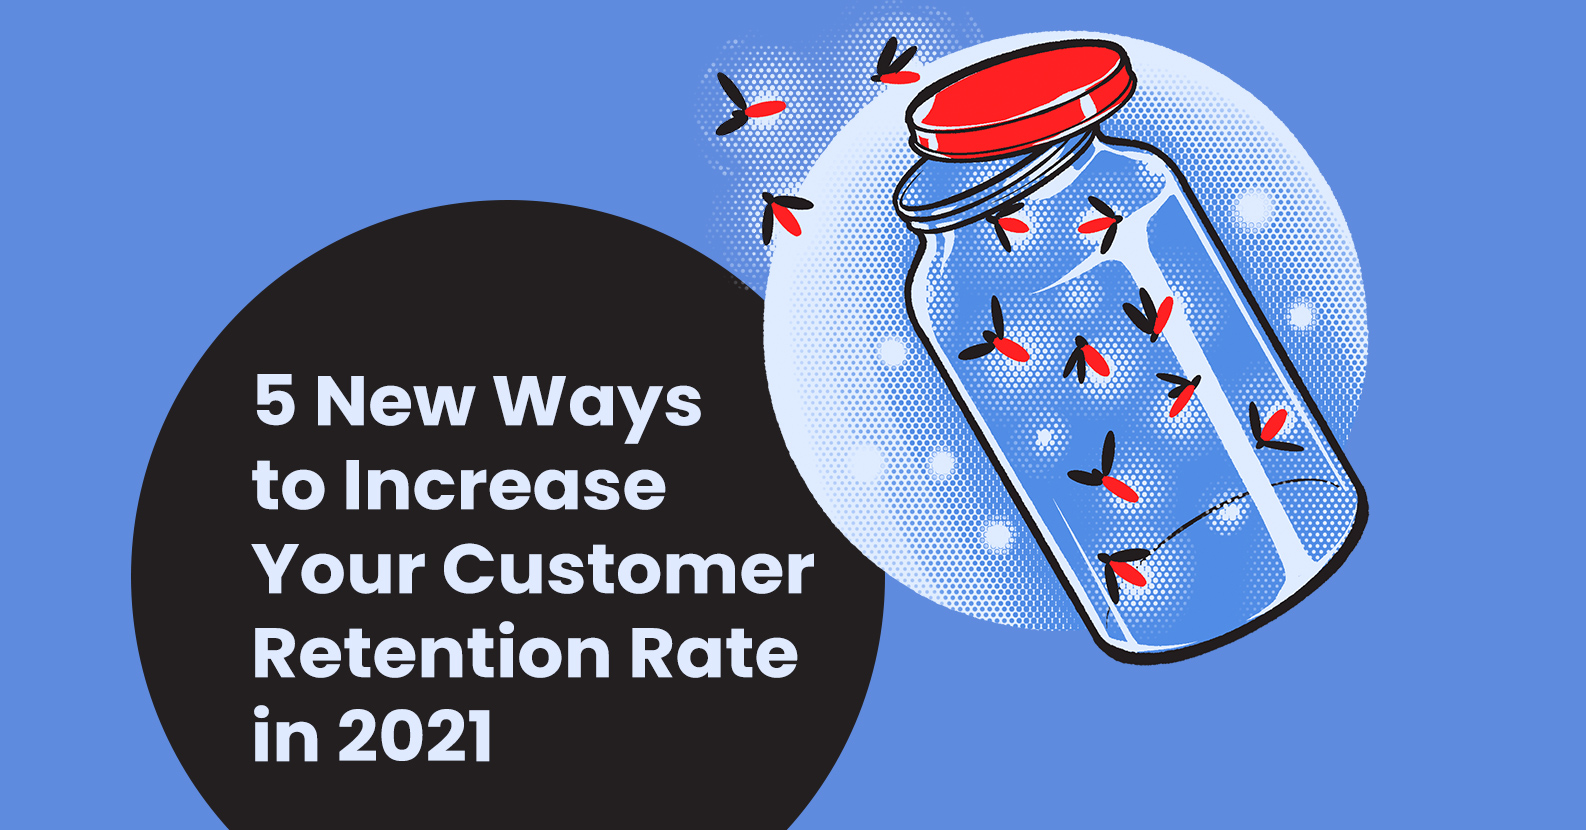 5 New Ways to Increase Your Customer Retention Rate in 2021